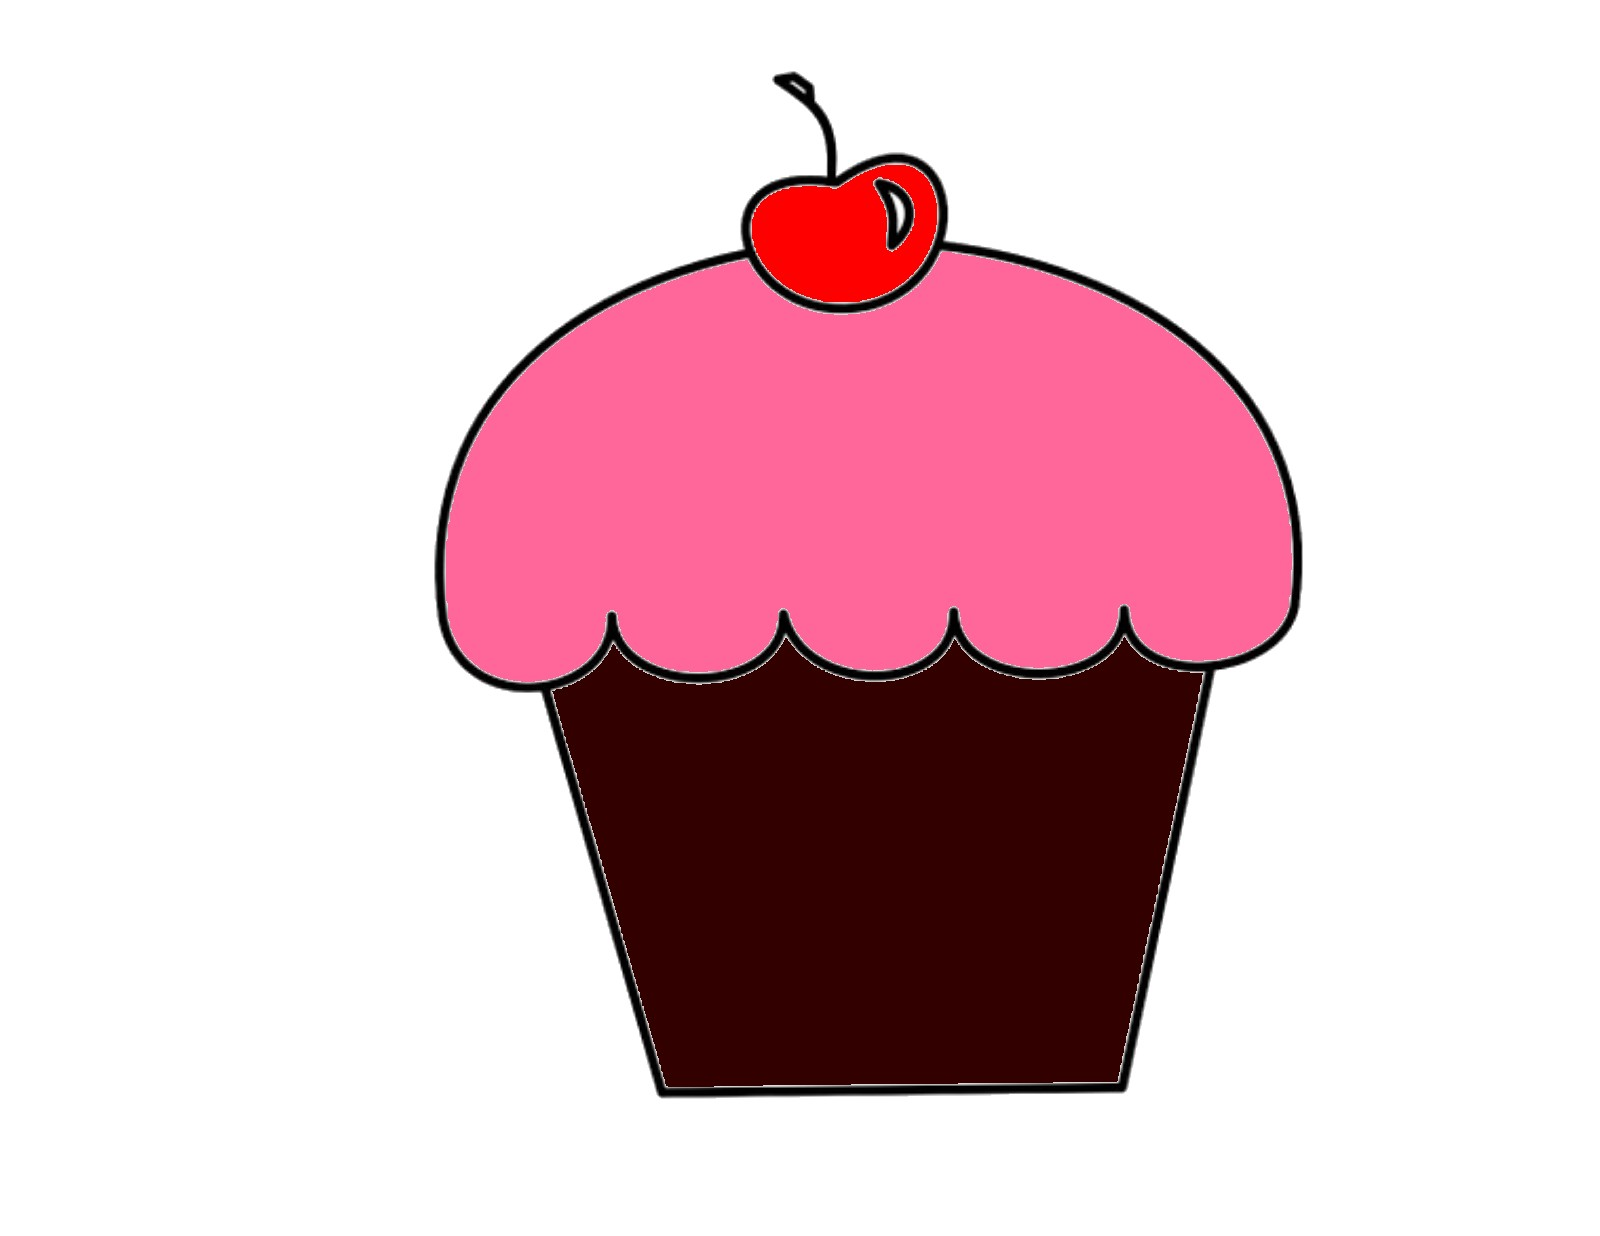 Cupcake Animated Images : Cupcake Pictures Cartoon - Cliparts.co